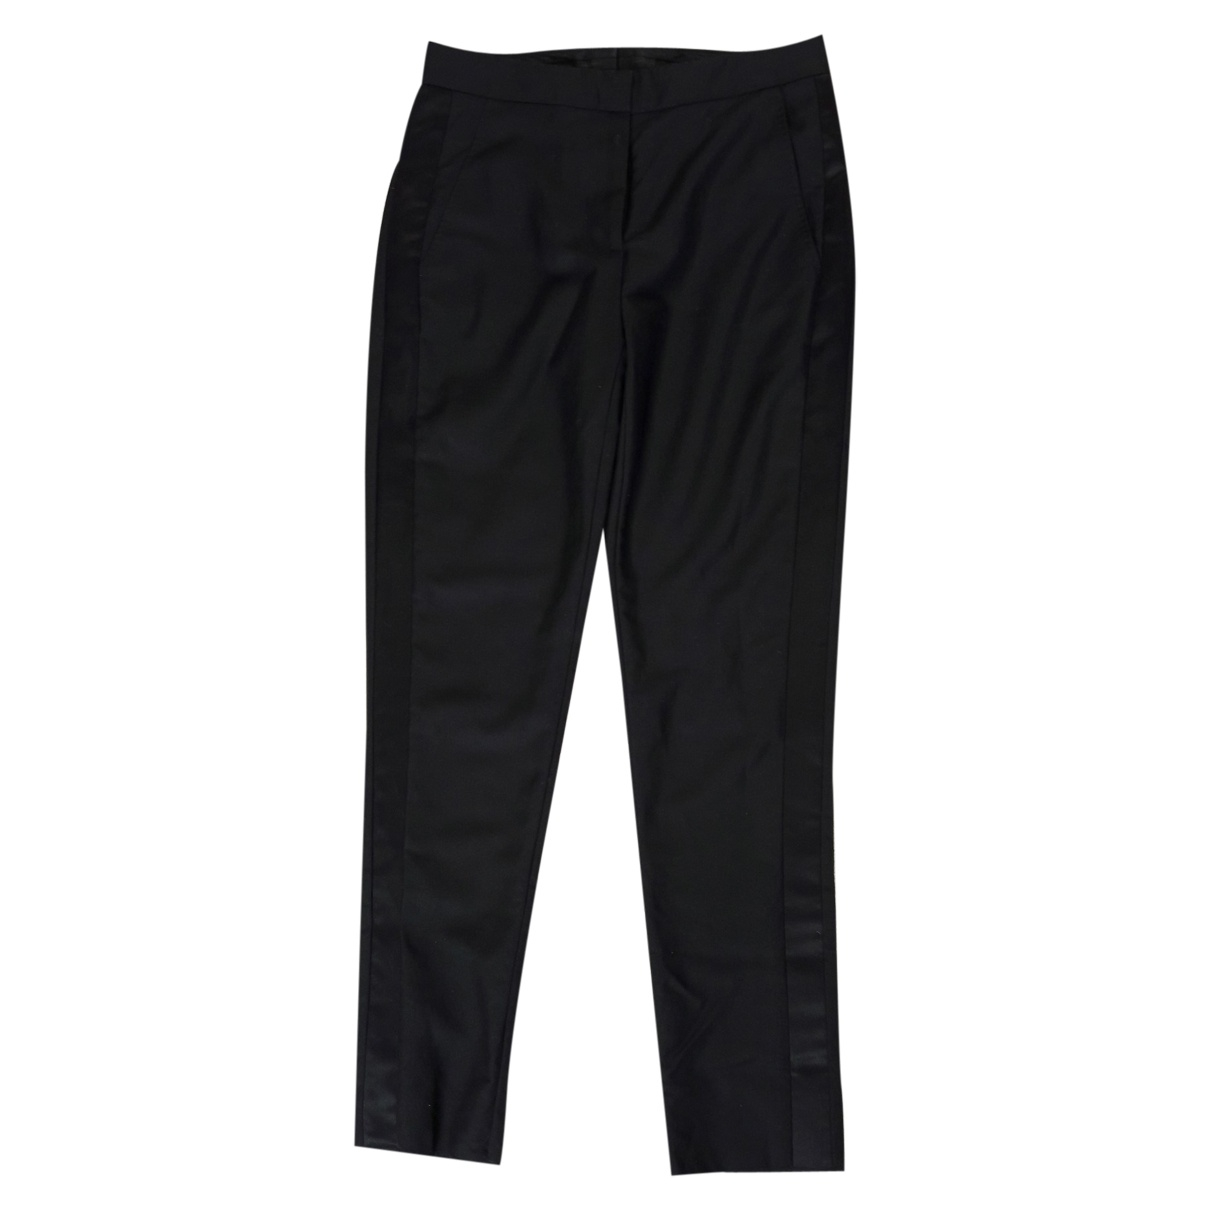 Burberry \N Black Wool Trousers for Women 6 UK